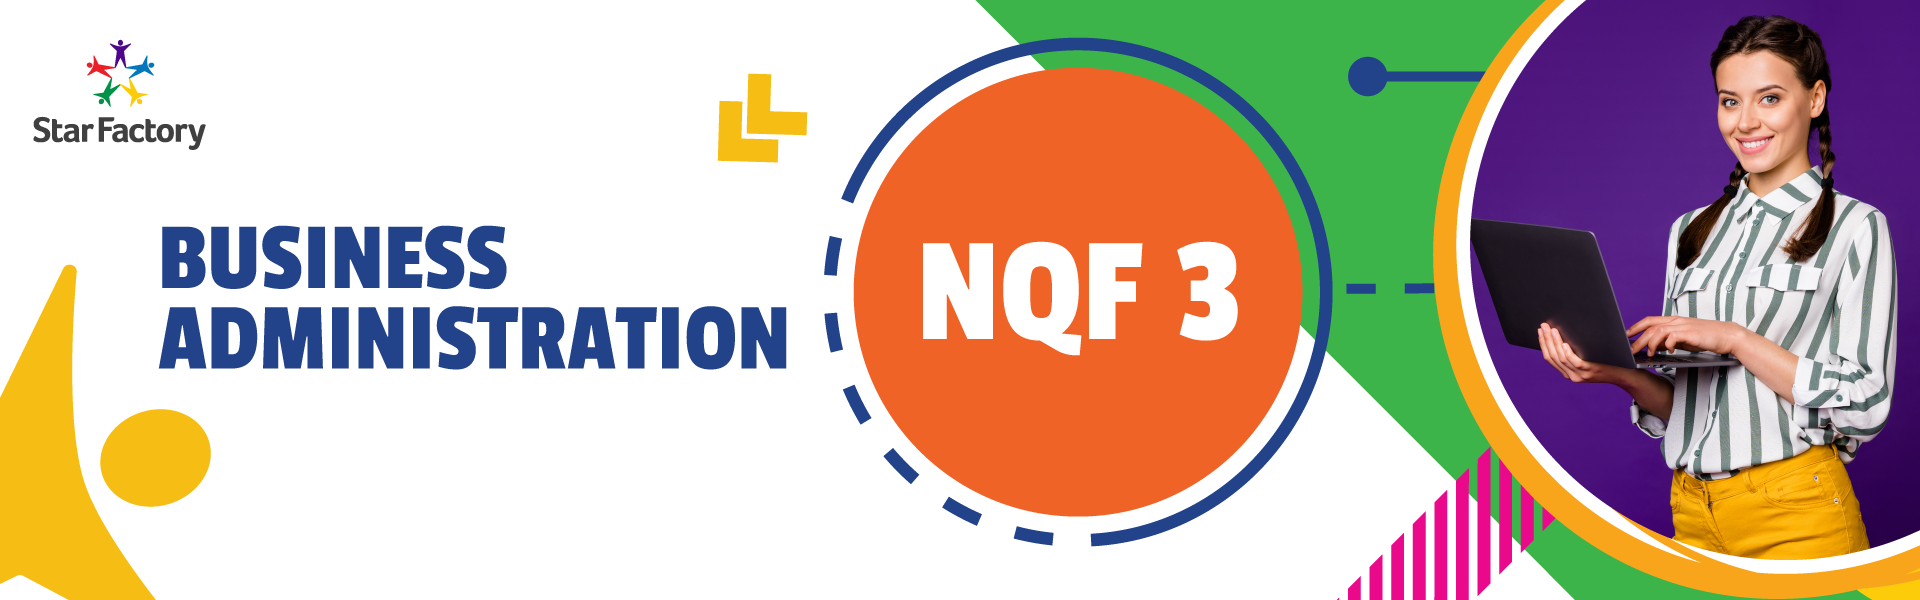 Business Administration - NQF 3